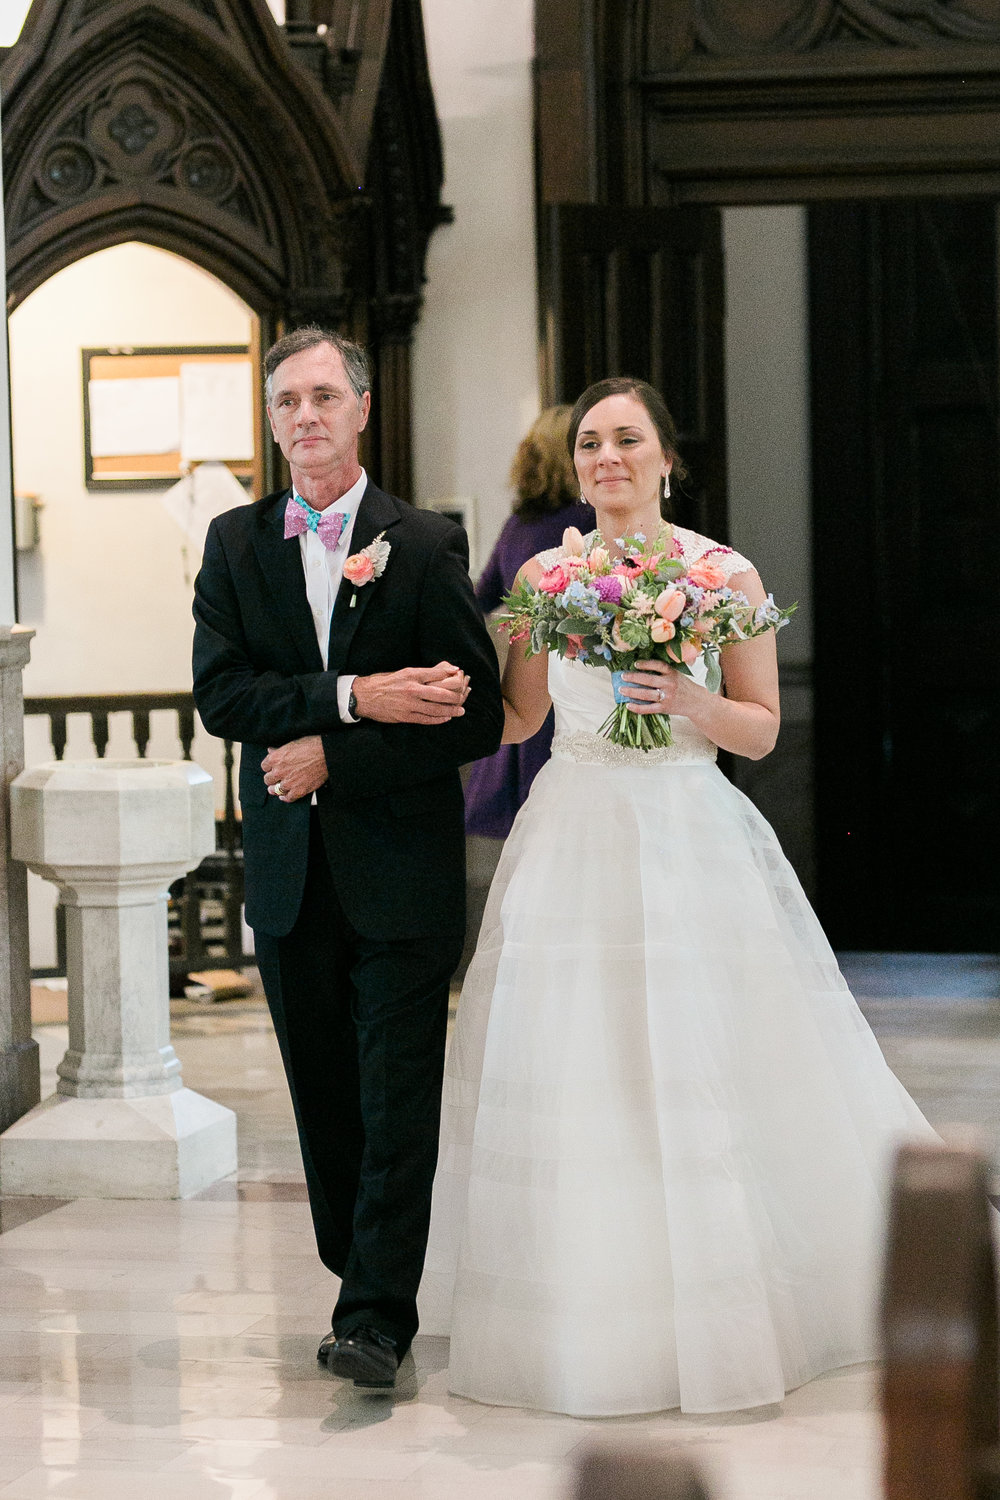 Father of the bride walking daughter down the aisle at Cathedral of St. John the Baptist in Charleston, SC  //  A Lowcountry Wedding Magazine & Blog